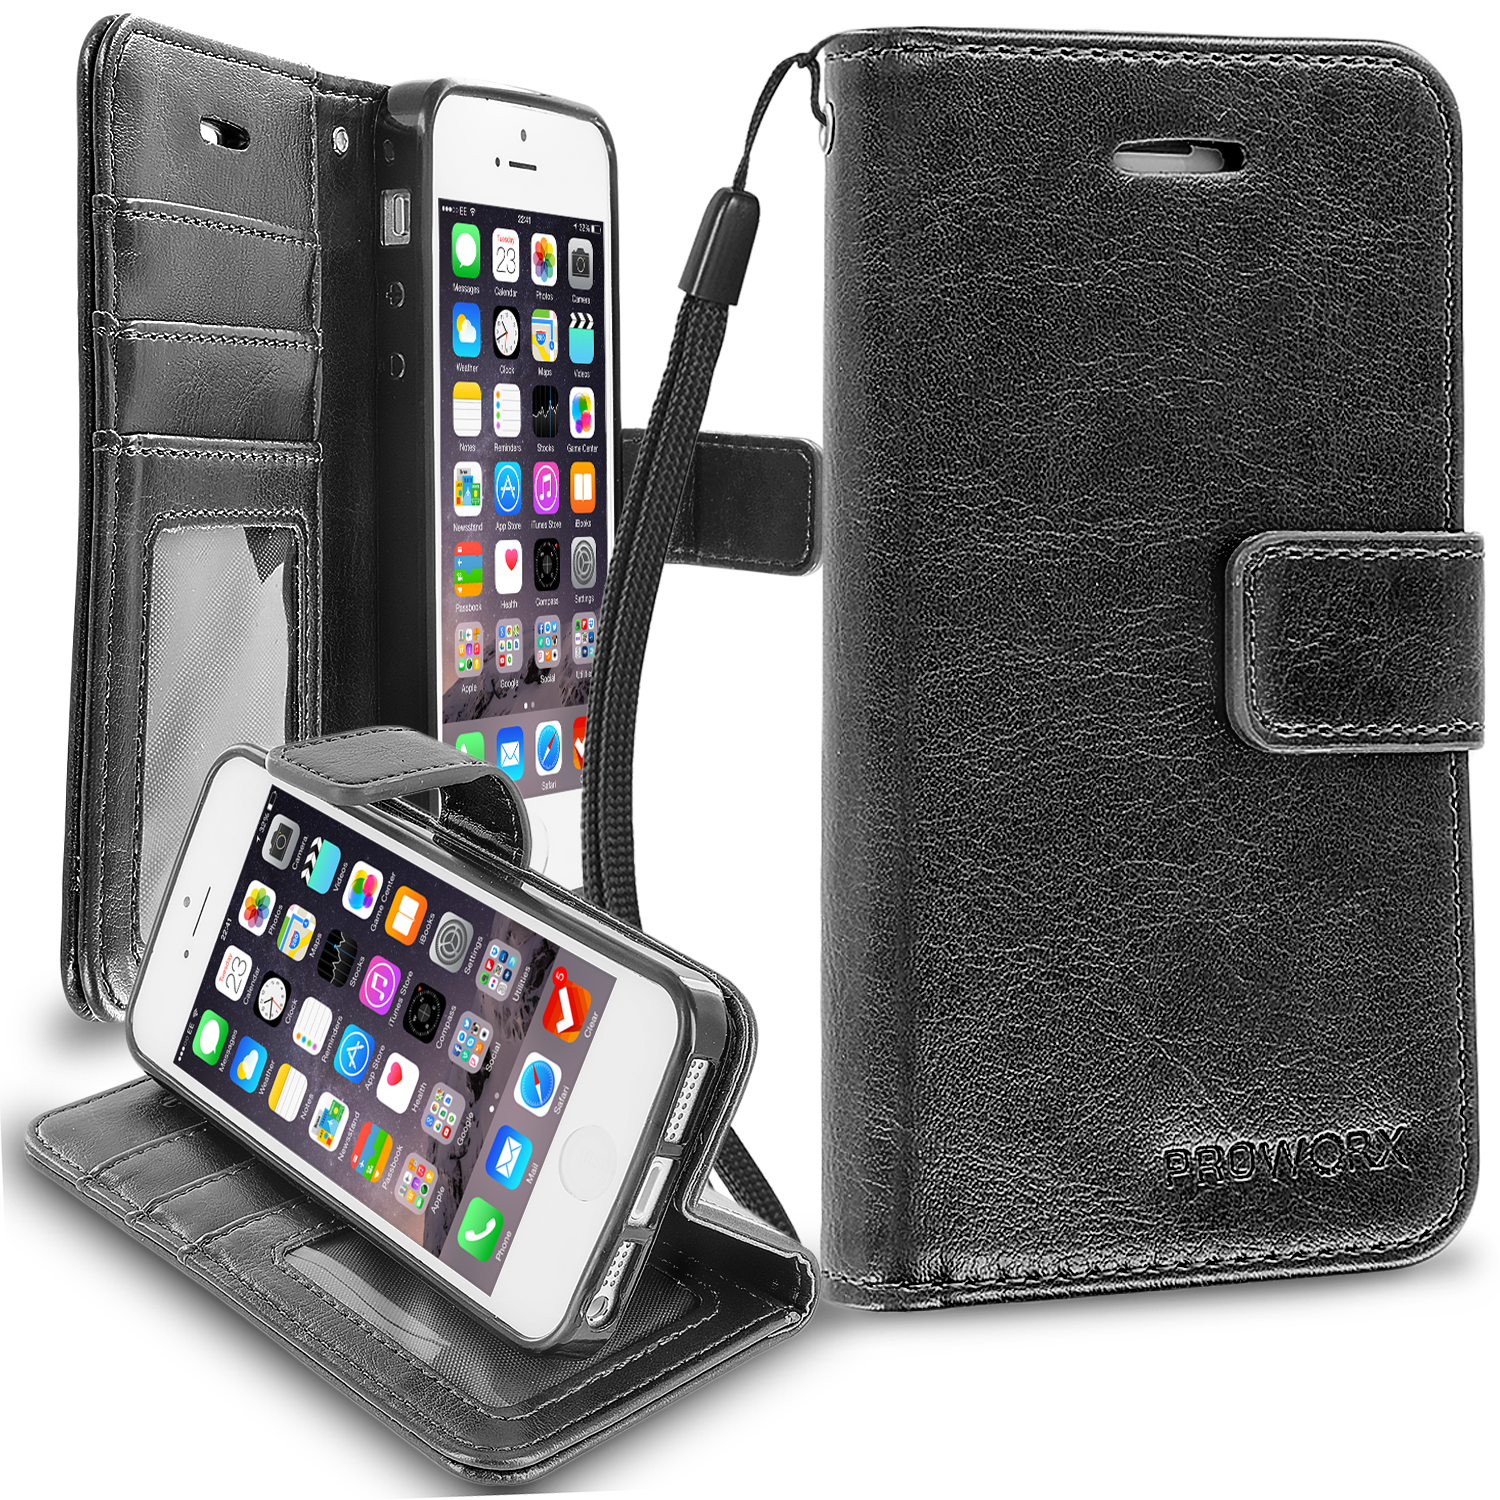 Apple iPhone 5/5S/SE Black ProWorx Wallet Case Luxury PU Leather Case Cover With Card Slots & Stand